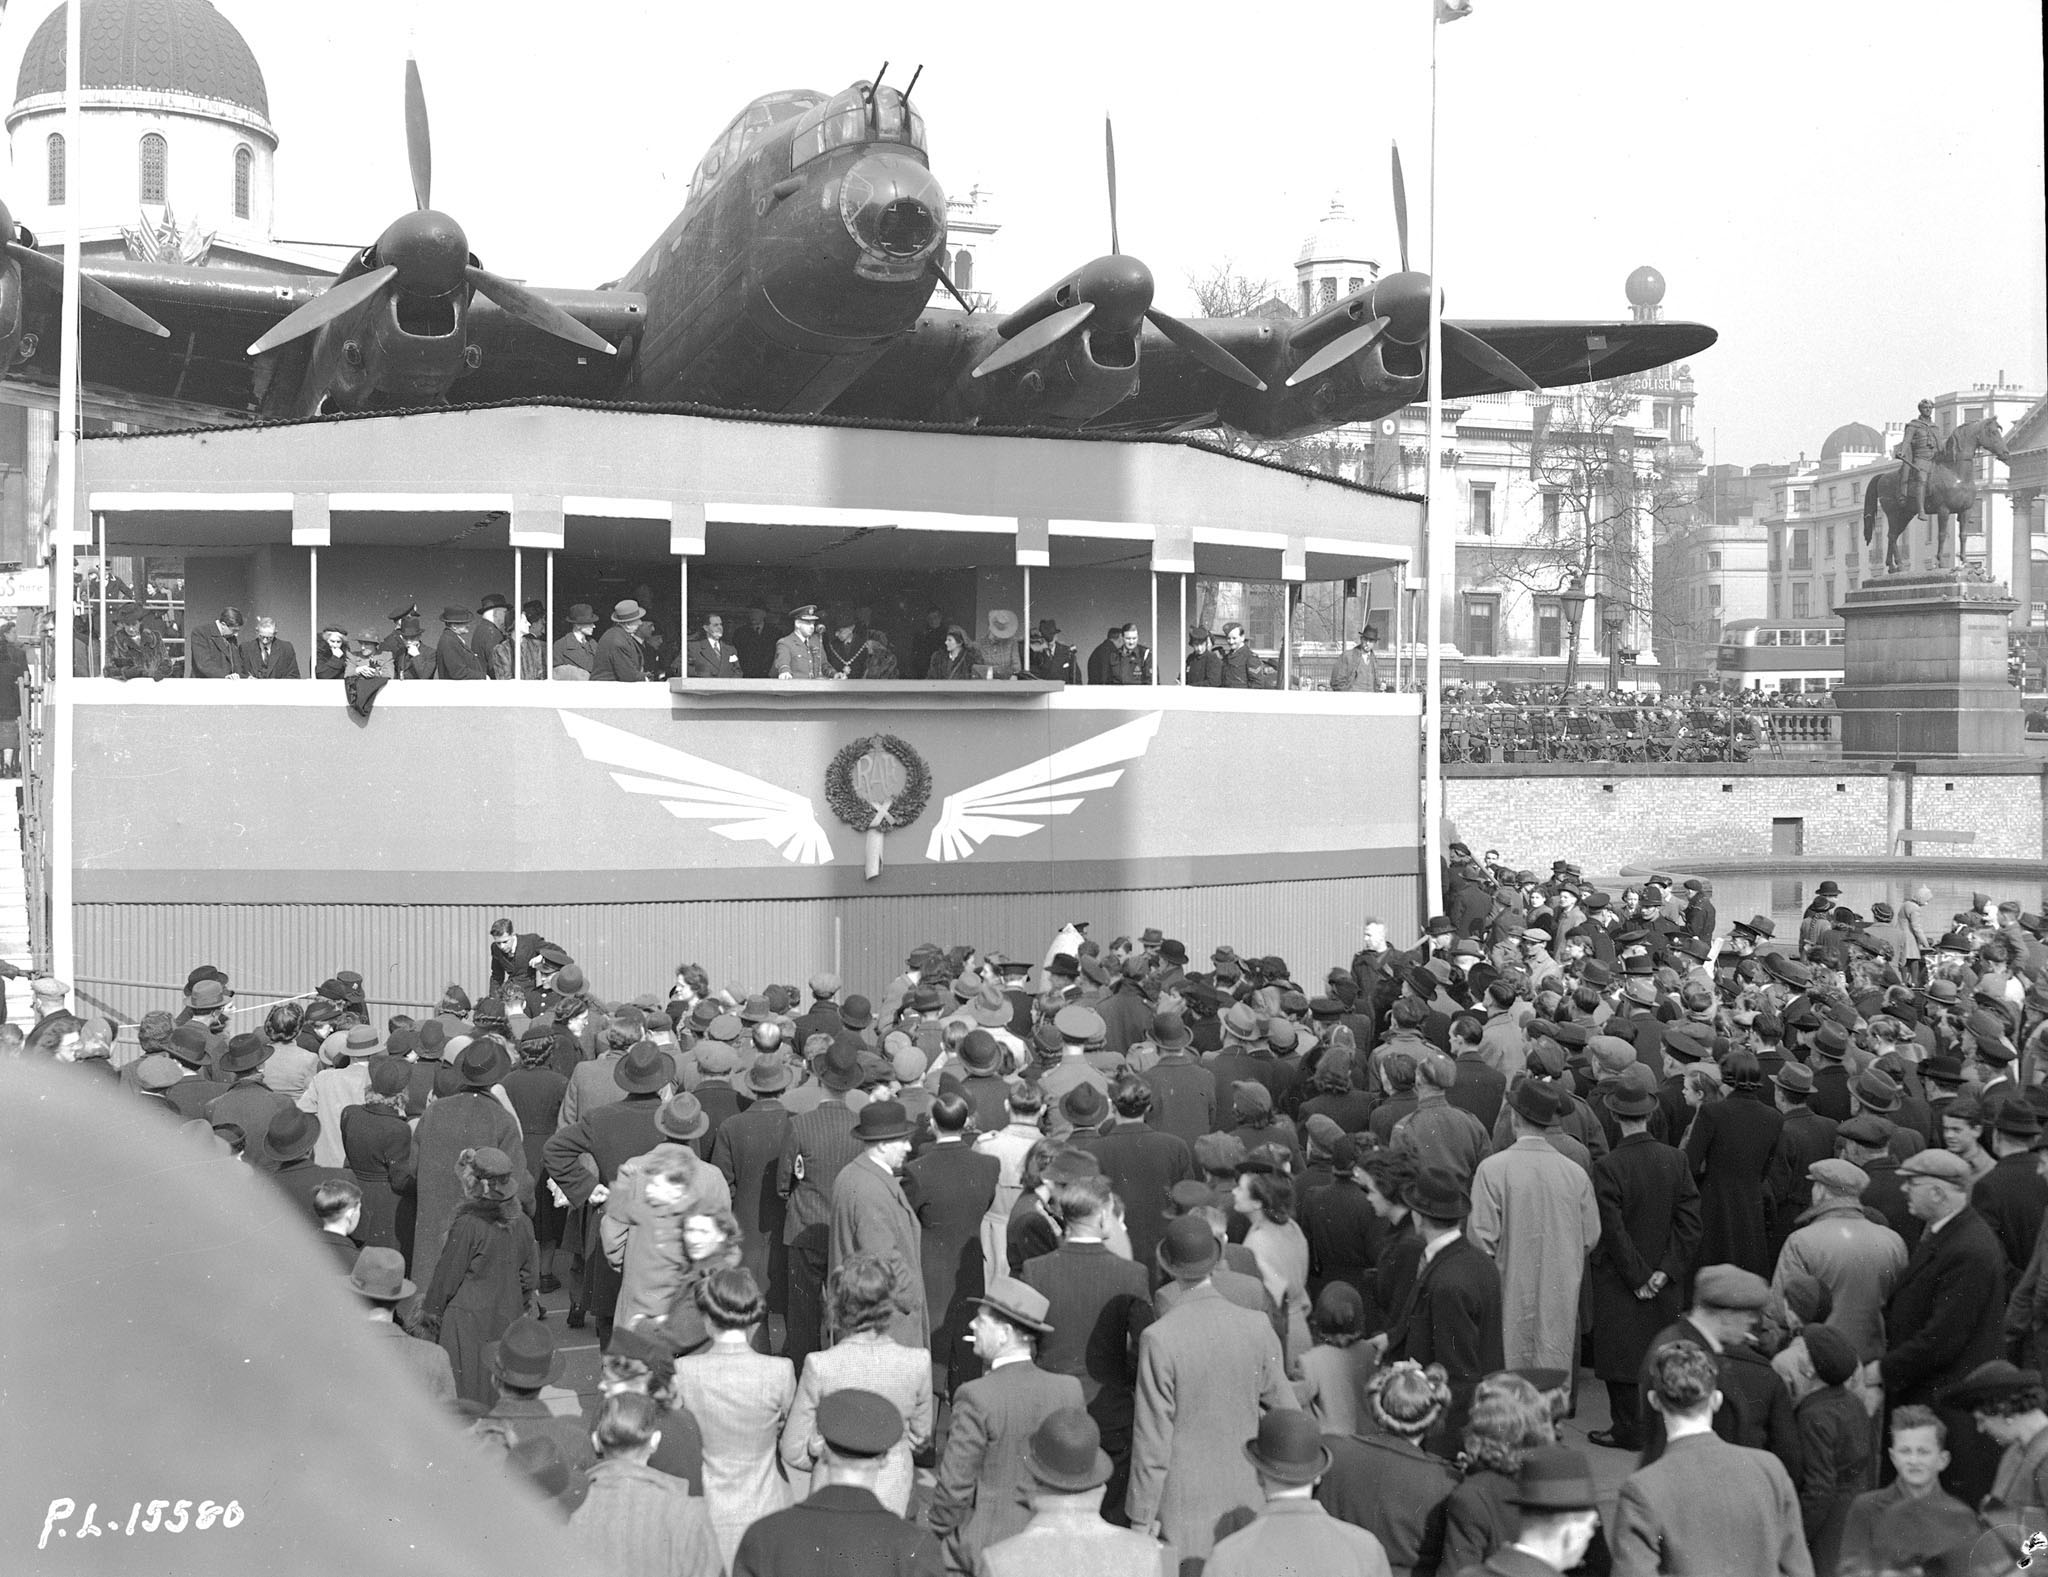 "On March 13, 1943, under the nose of a giant Lancaster bomber, Air Marshal Harold ""Gus"" Edwards, air officer commander-in-chief, RCAF Overseas, addresses a large gathering in Trafalgar Square in London, England, at the conclusion of a successful Wings for Victory campaign. PHOTO: DND Archives, PL-15580"